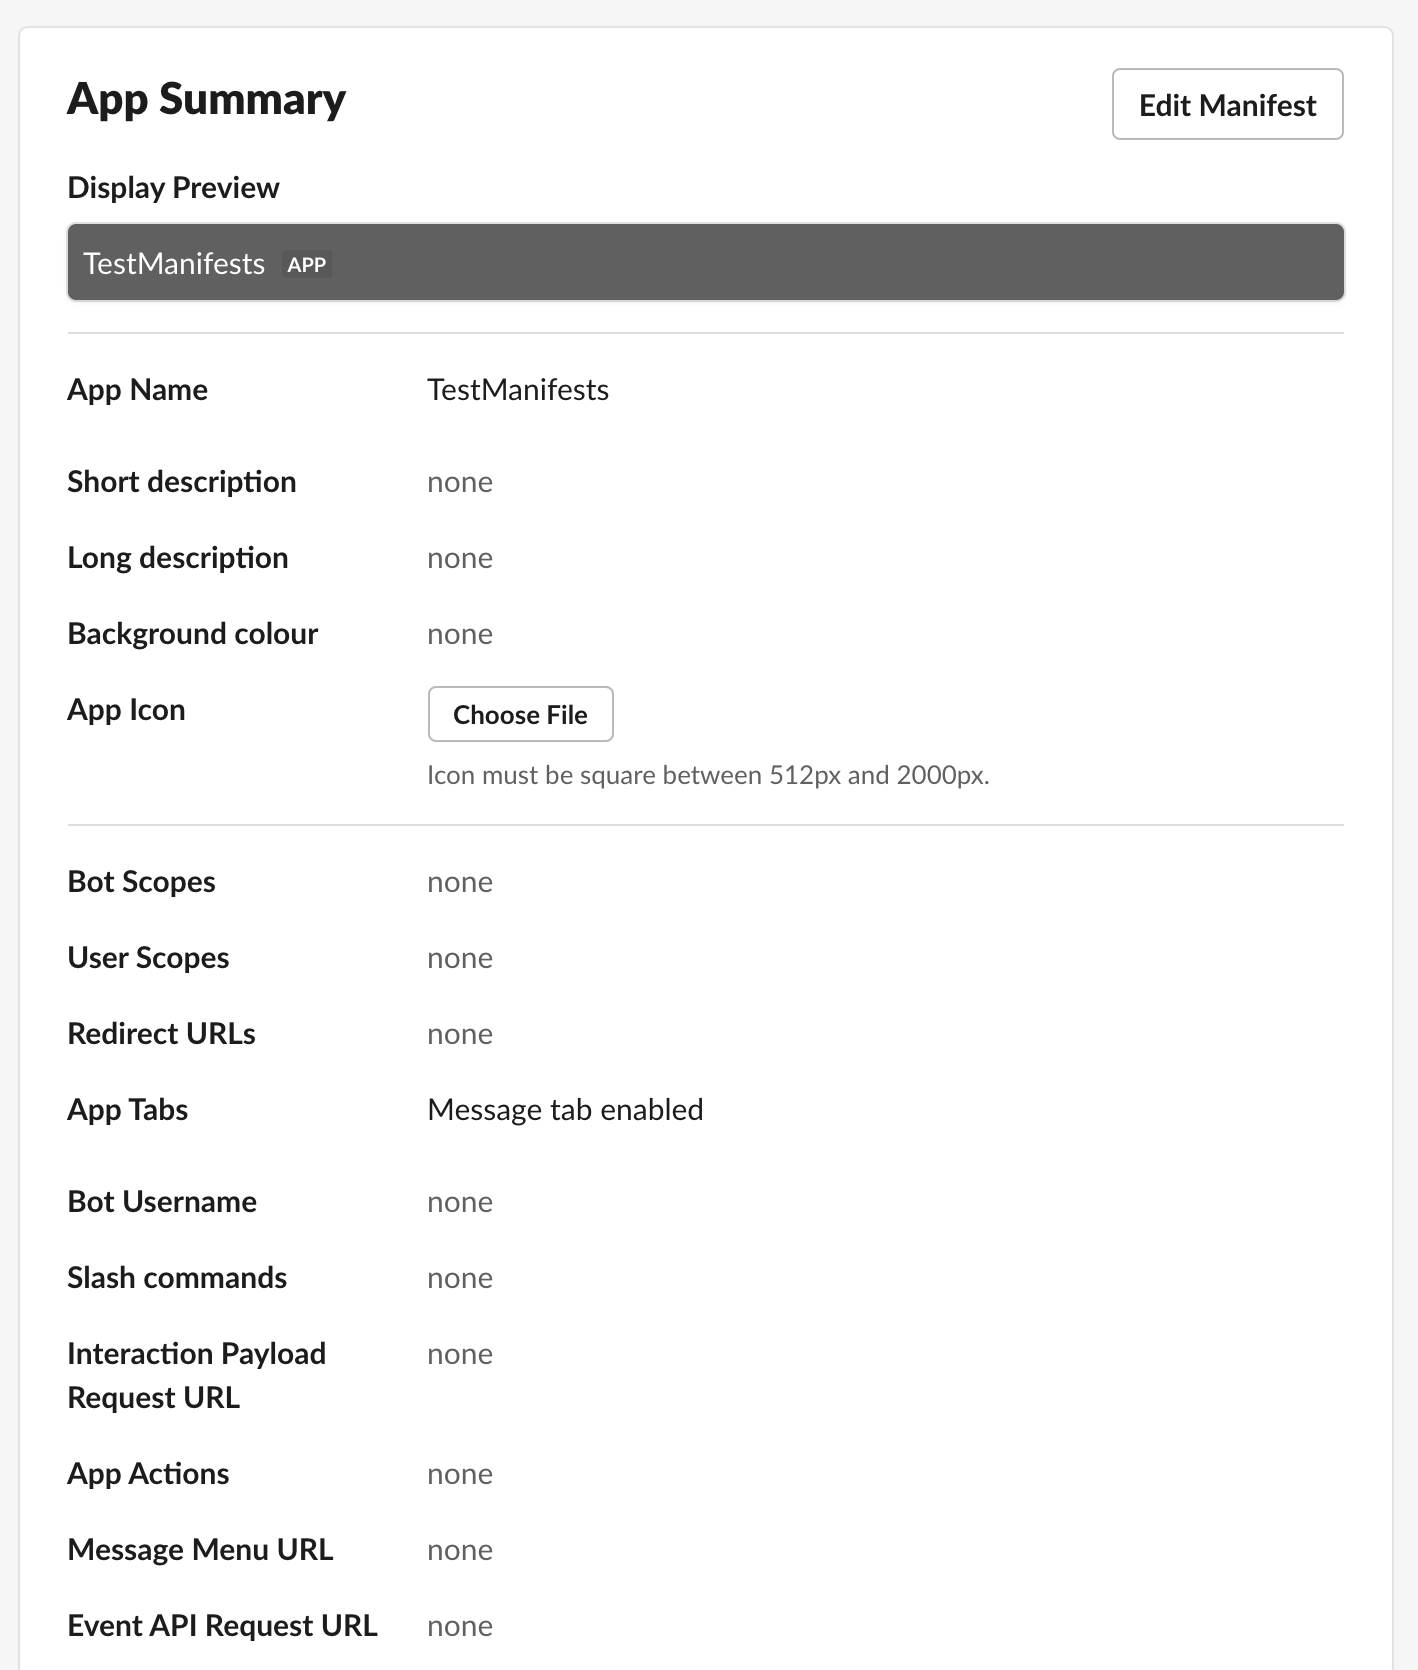 A screenshot showing the new app summary screen